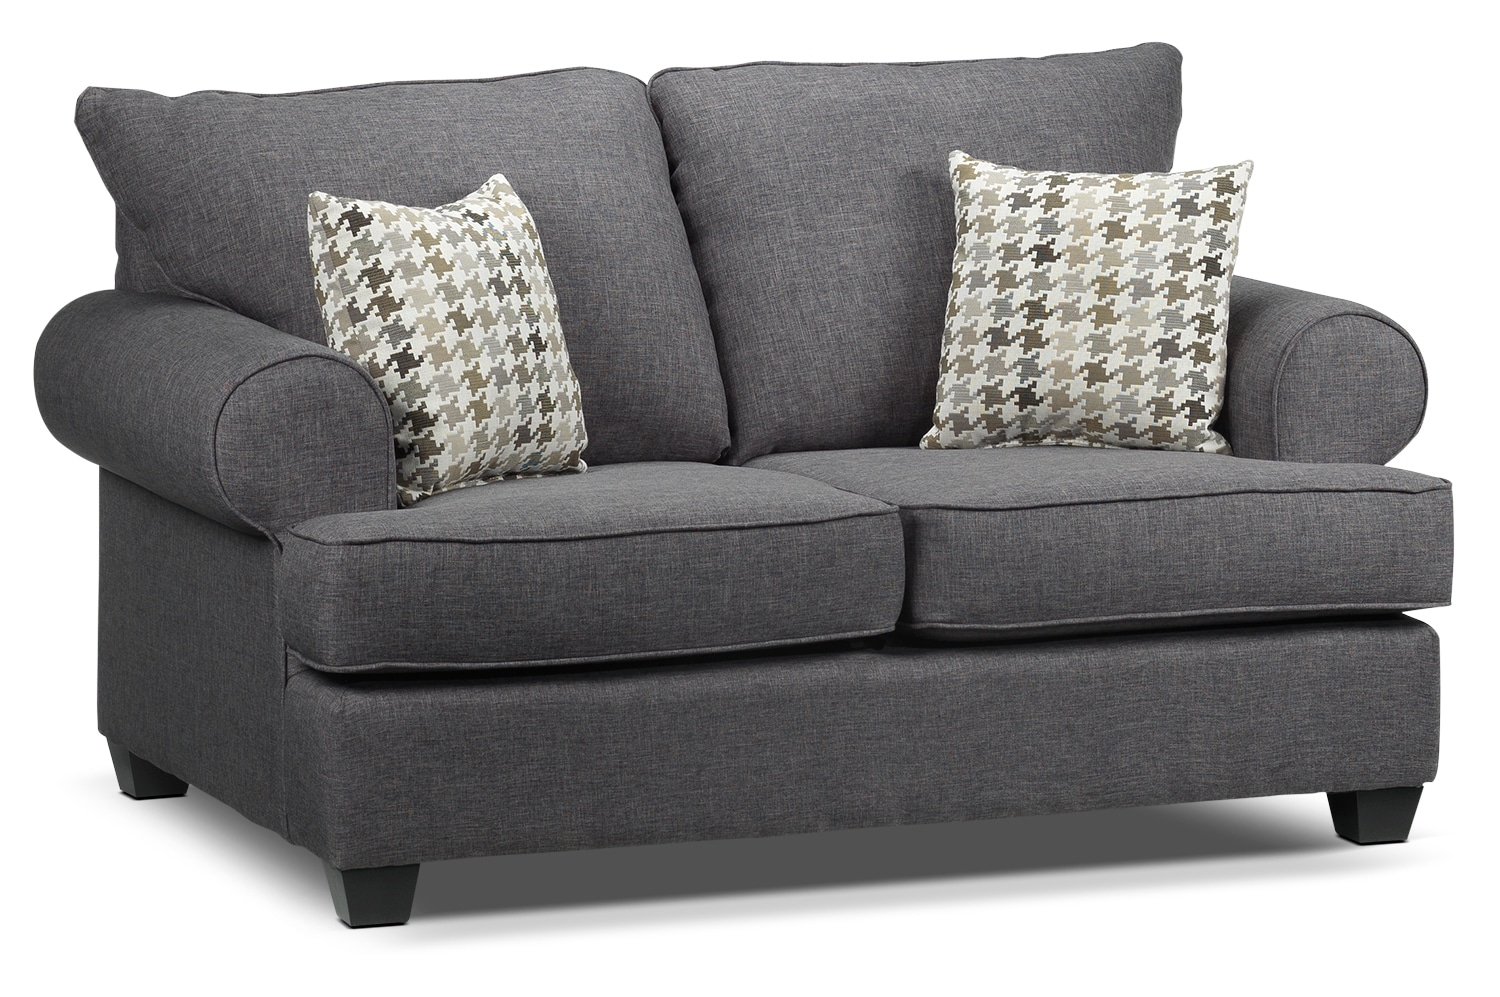 Lexie Loveseat - Gray